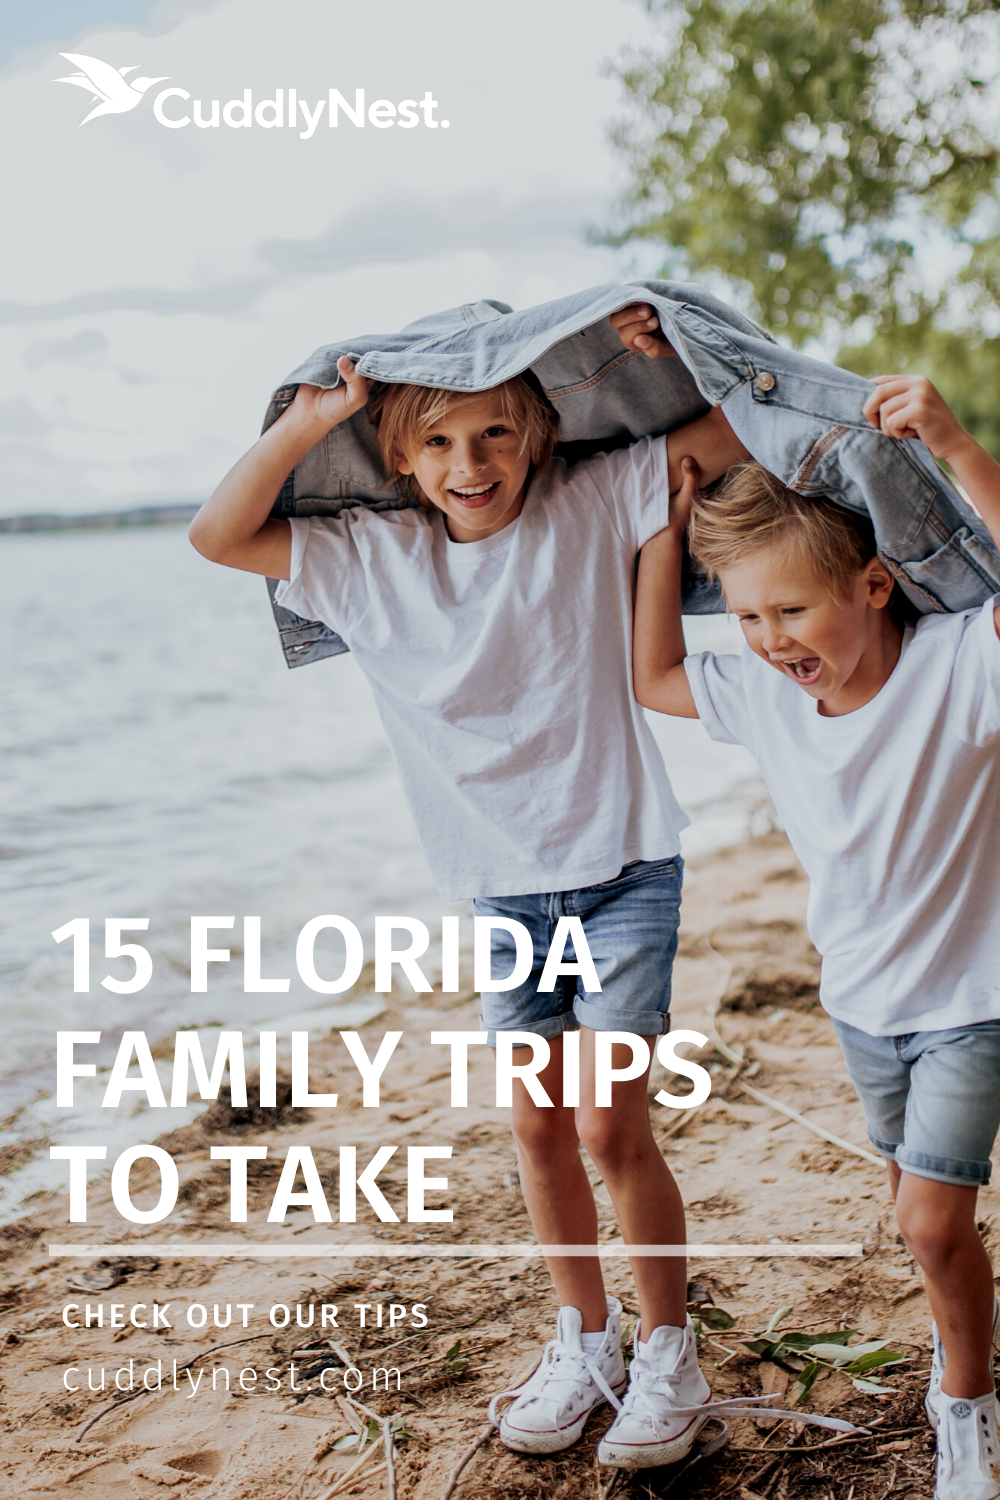 15 Unbeatable Florida Family Vacations With Kids Cuddlynest Travel Blog Florida Family Vacation Florida Family Trip Best Family Beaches